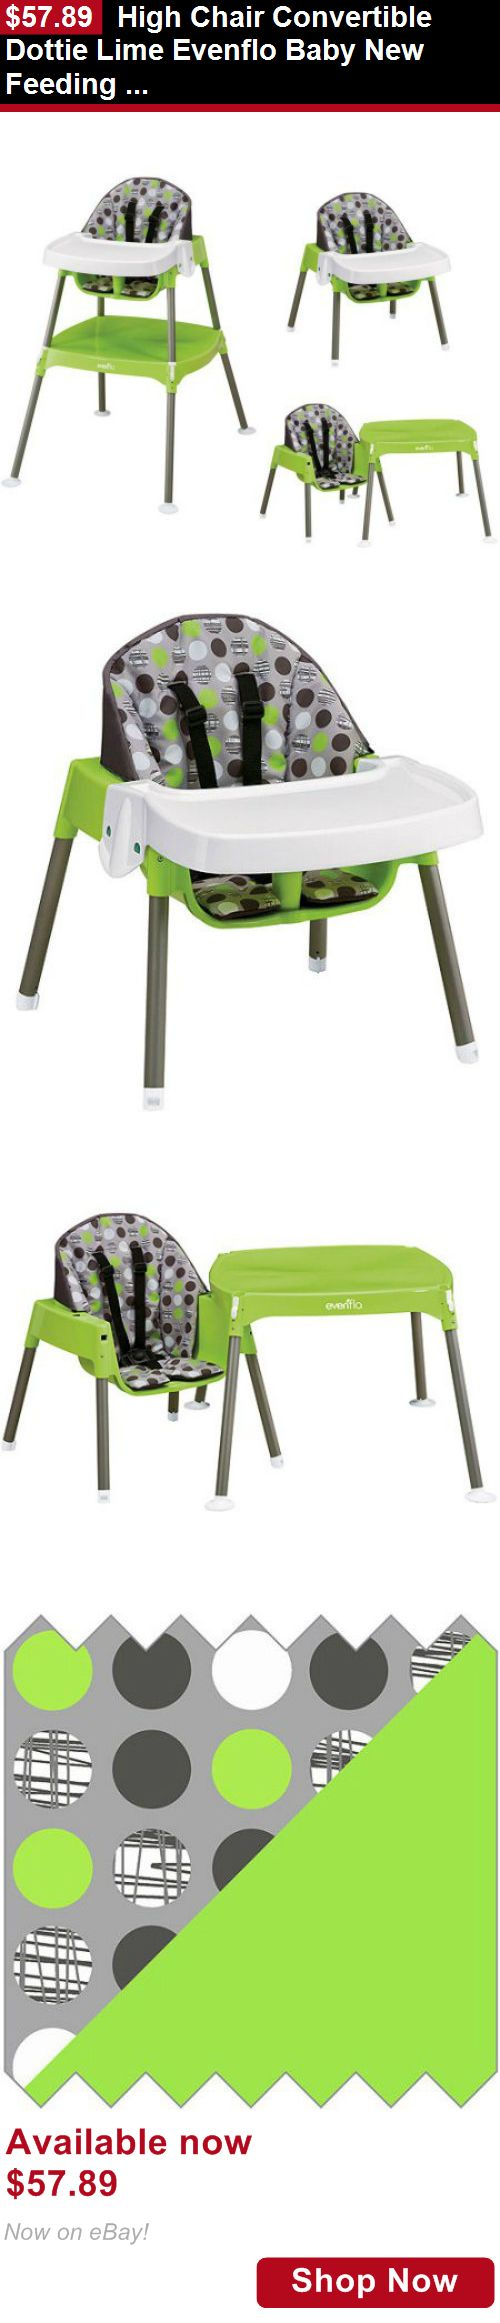 Baby High Chairs: High Chair Convertible Dottie Lime Evenflo Baby New Feeding Toddler Infant BUY IT NOW ONLY: $57.89